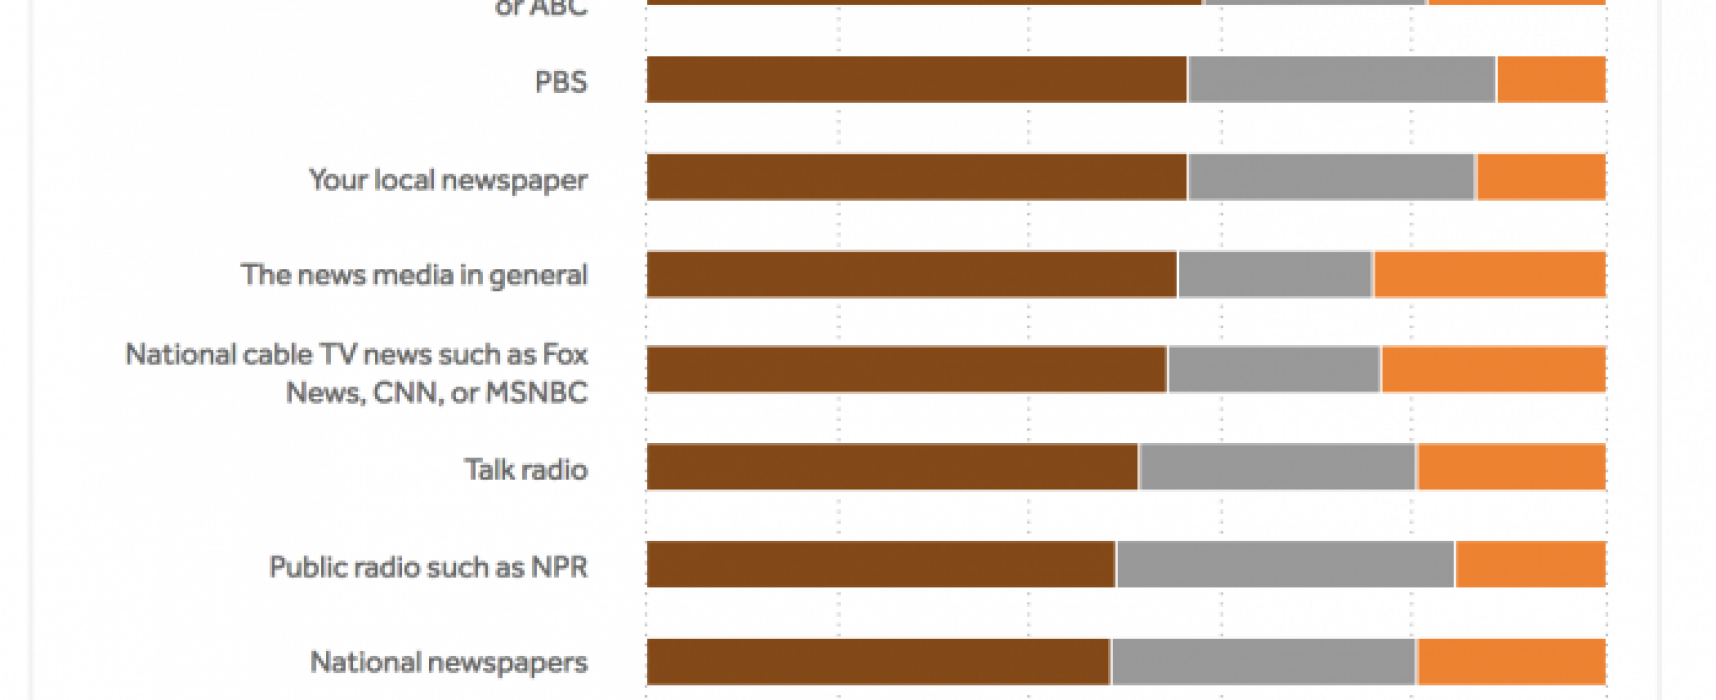 Americans feel they can best distinguish news from opinion in local TV news; worst, online news sites and social media